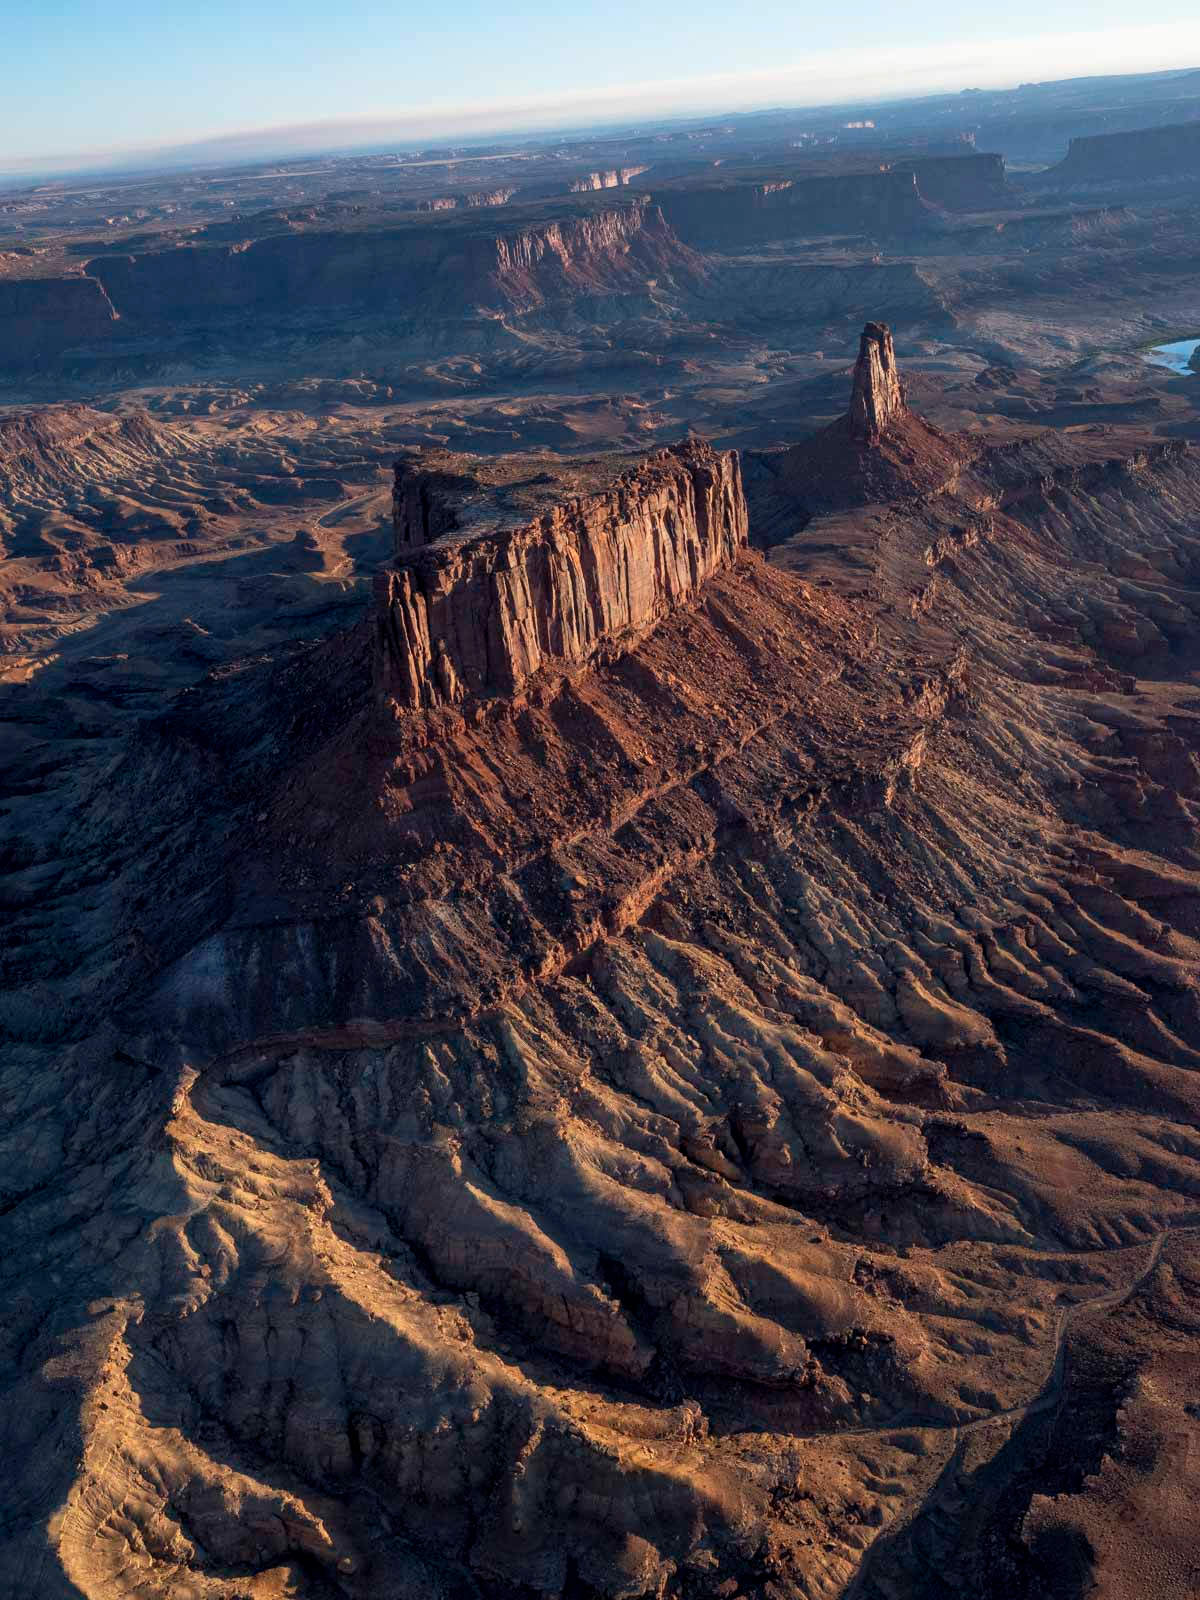 'Kingdom', Canyonlands, Moab, Utah